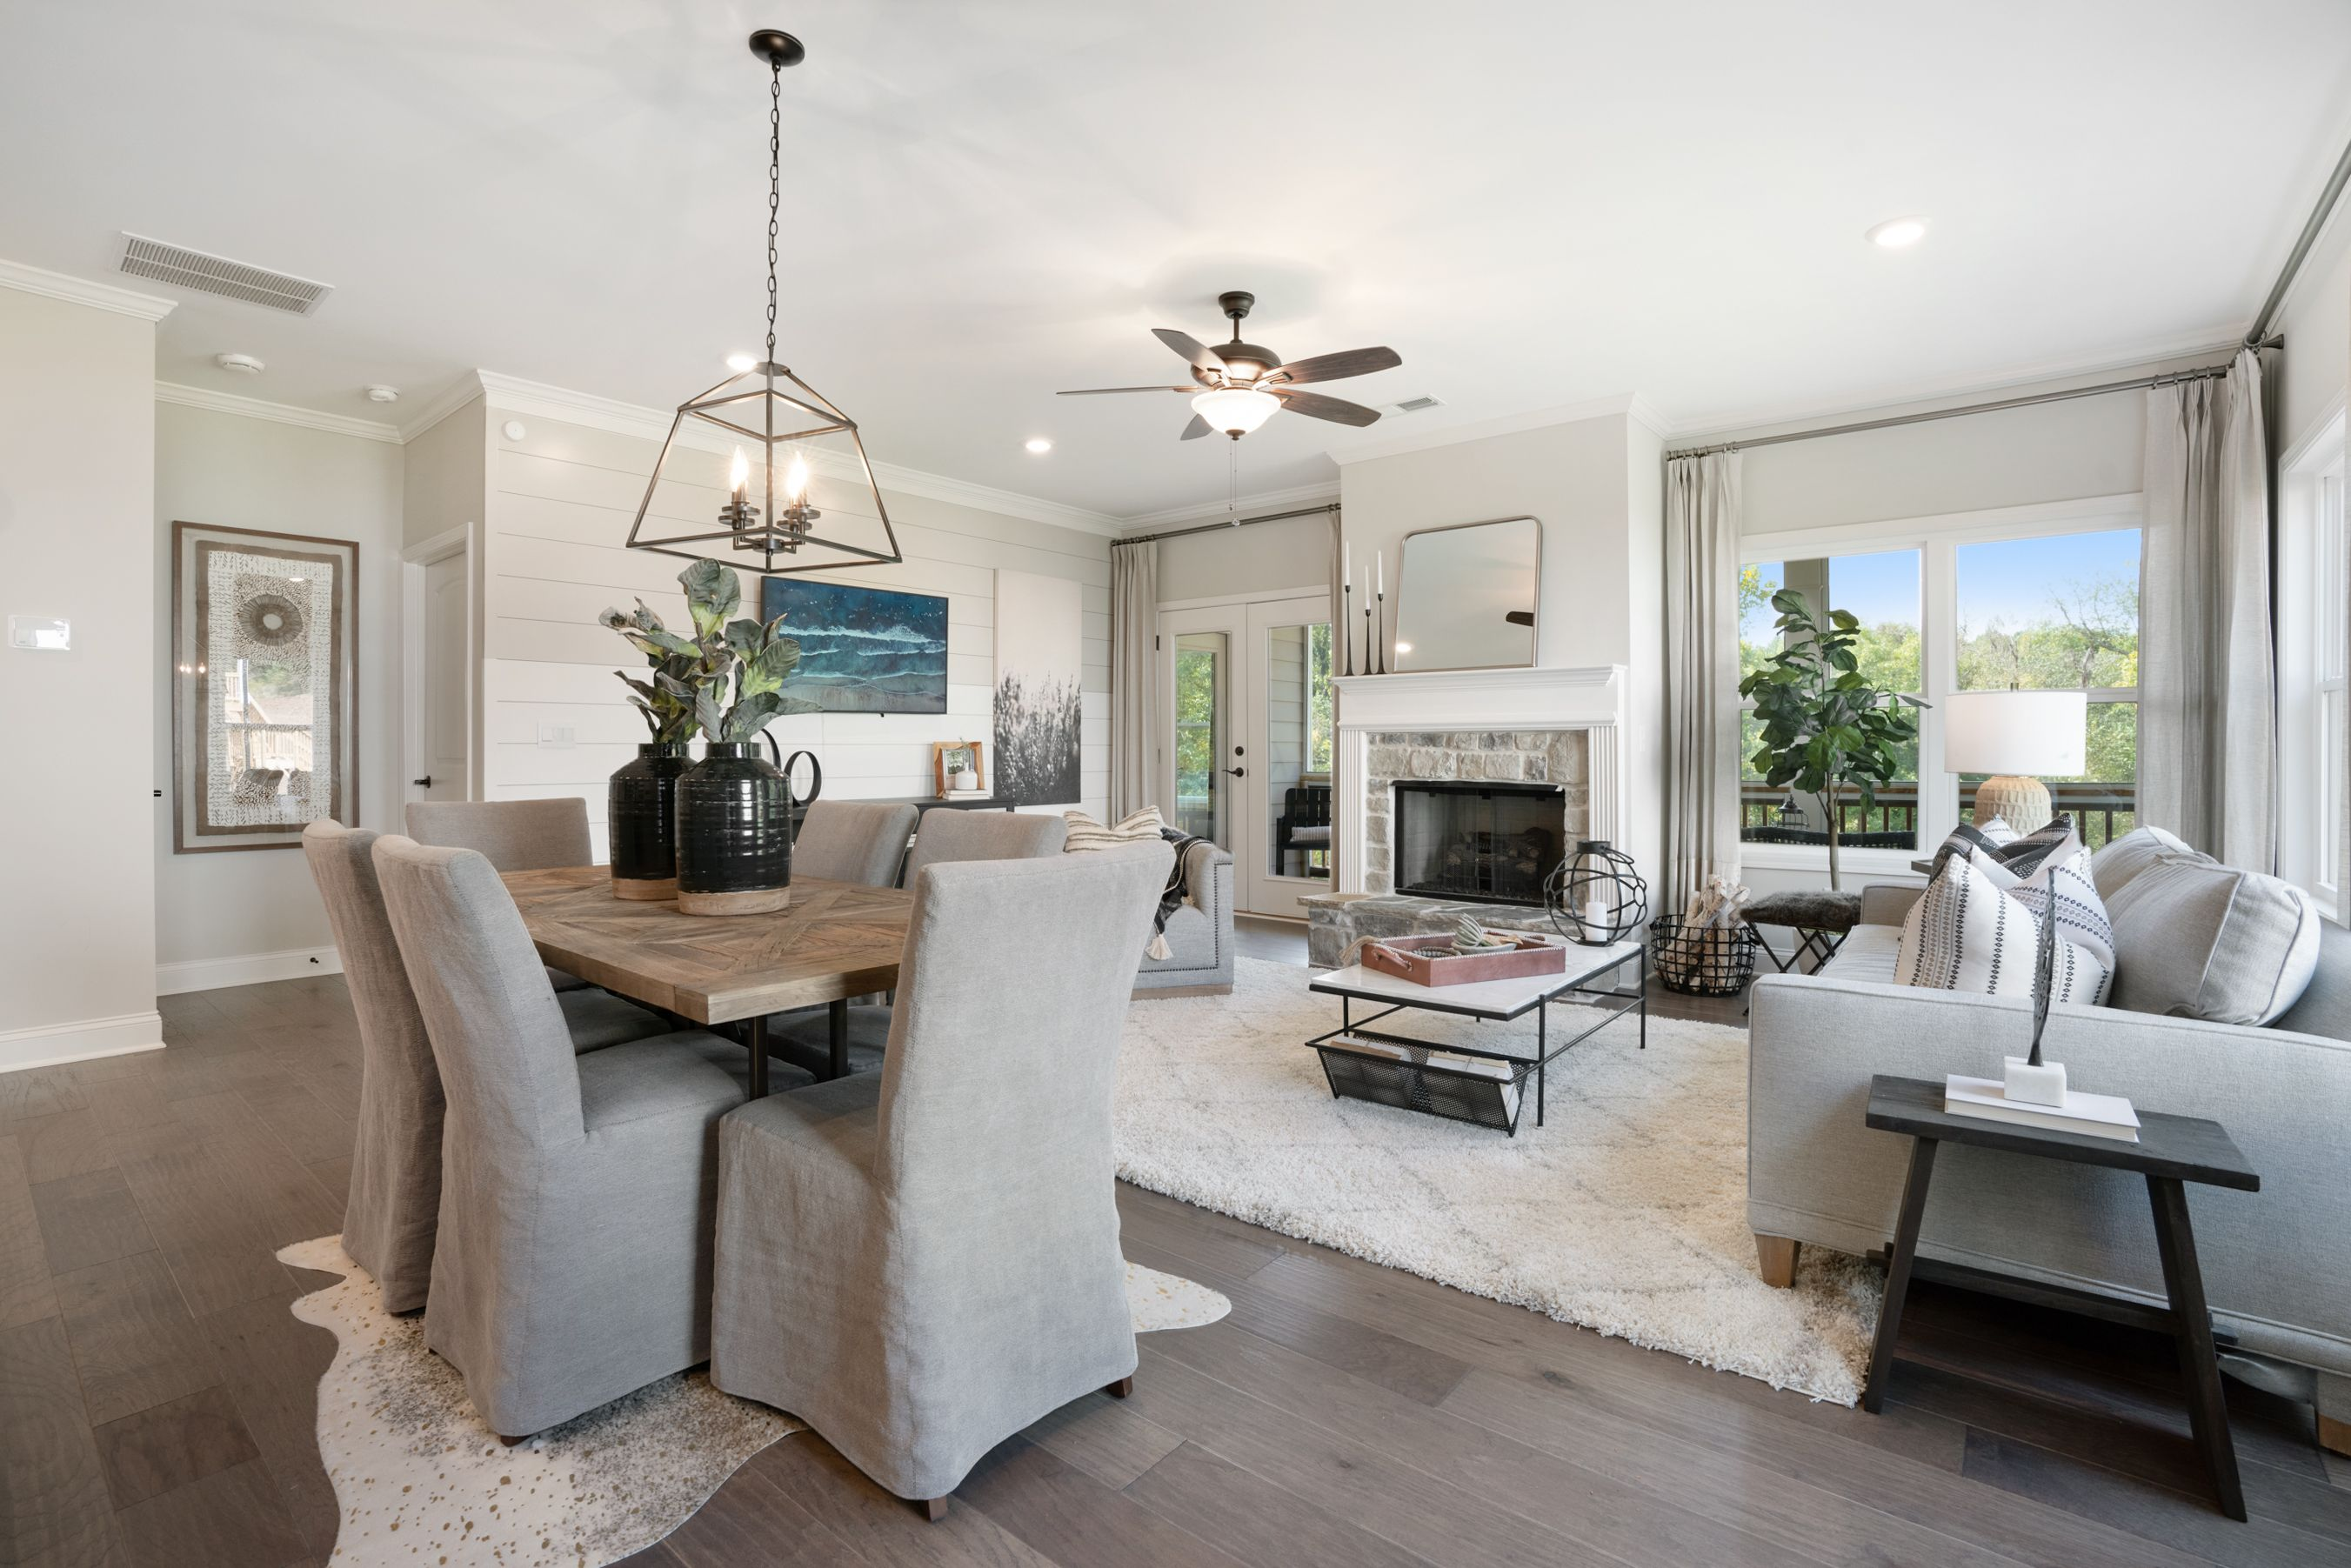 Living Area featured in the Rabun (Active Adult) By Artisan Built Communities in Atlanta, GA